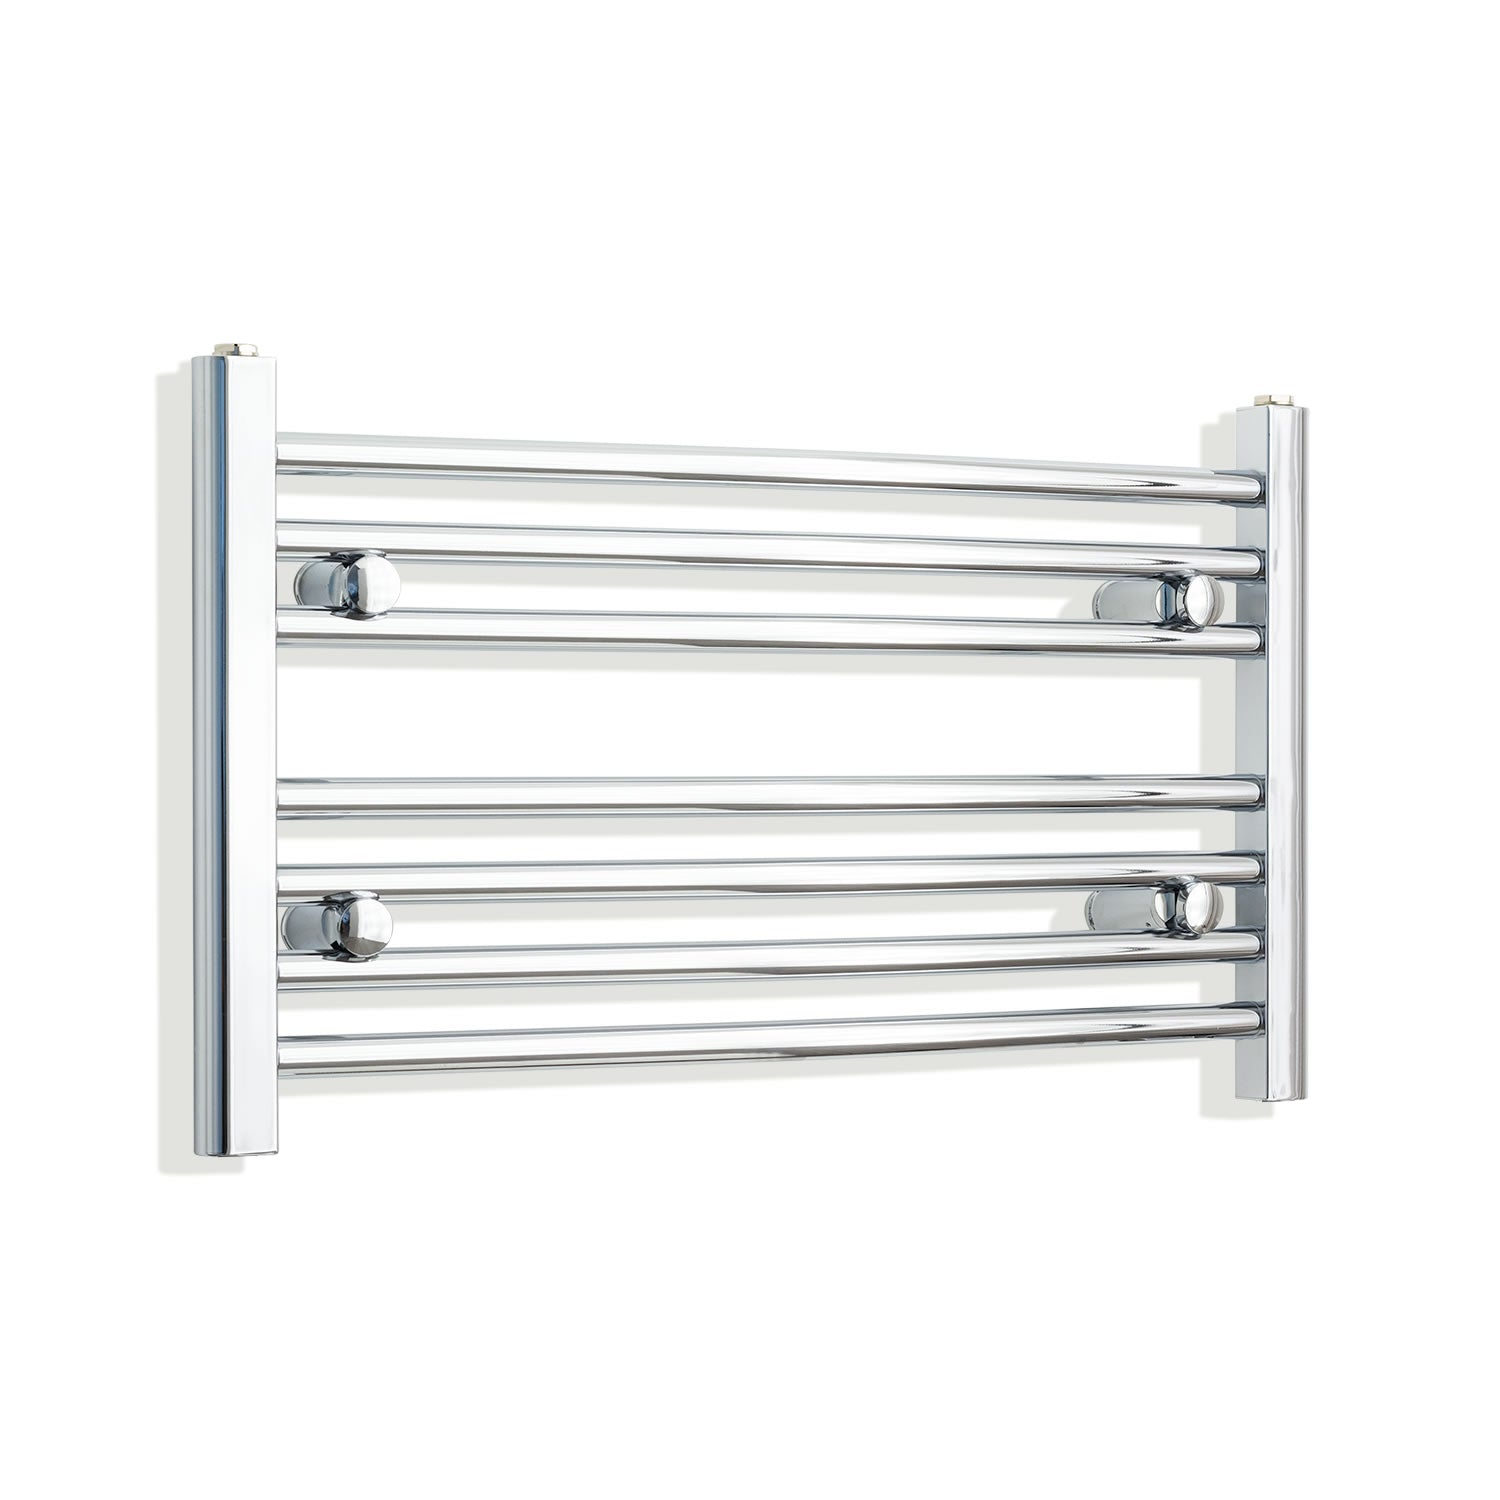 700mm Wide 400mm High Chrome Towel Rail Radiator